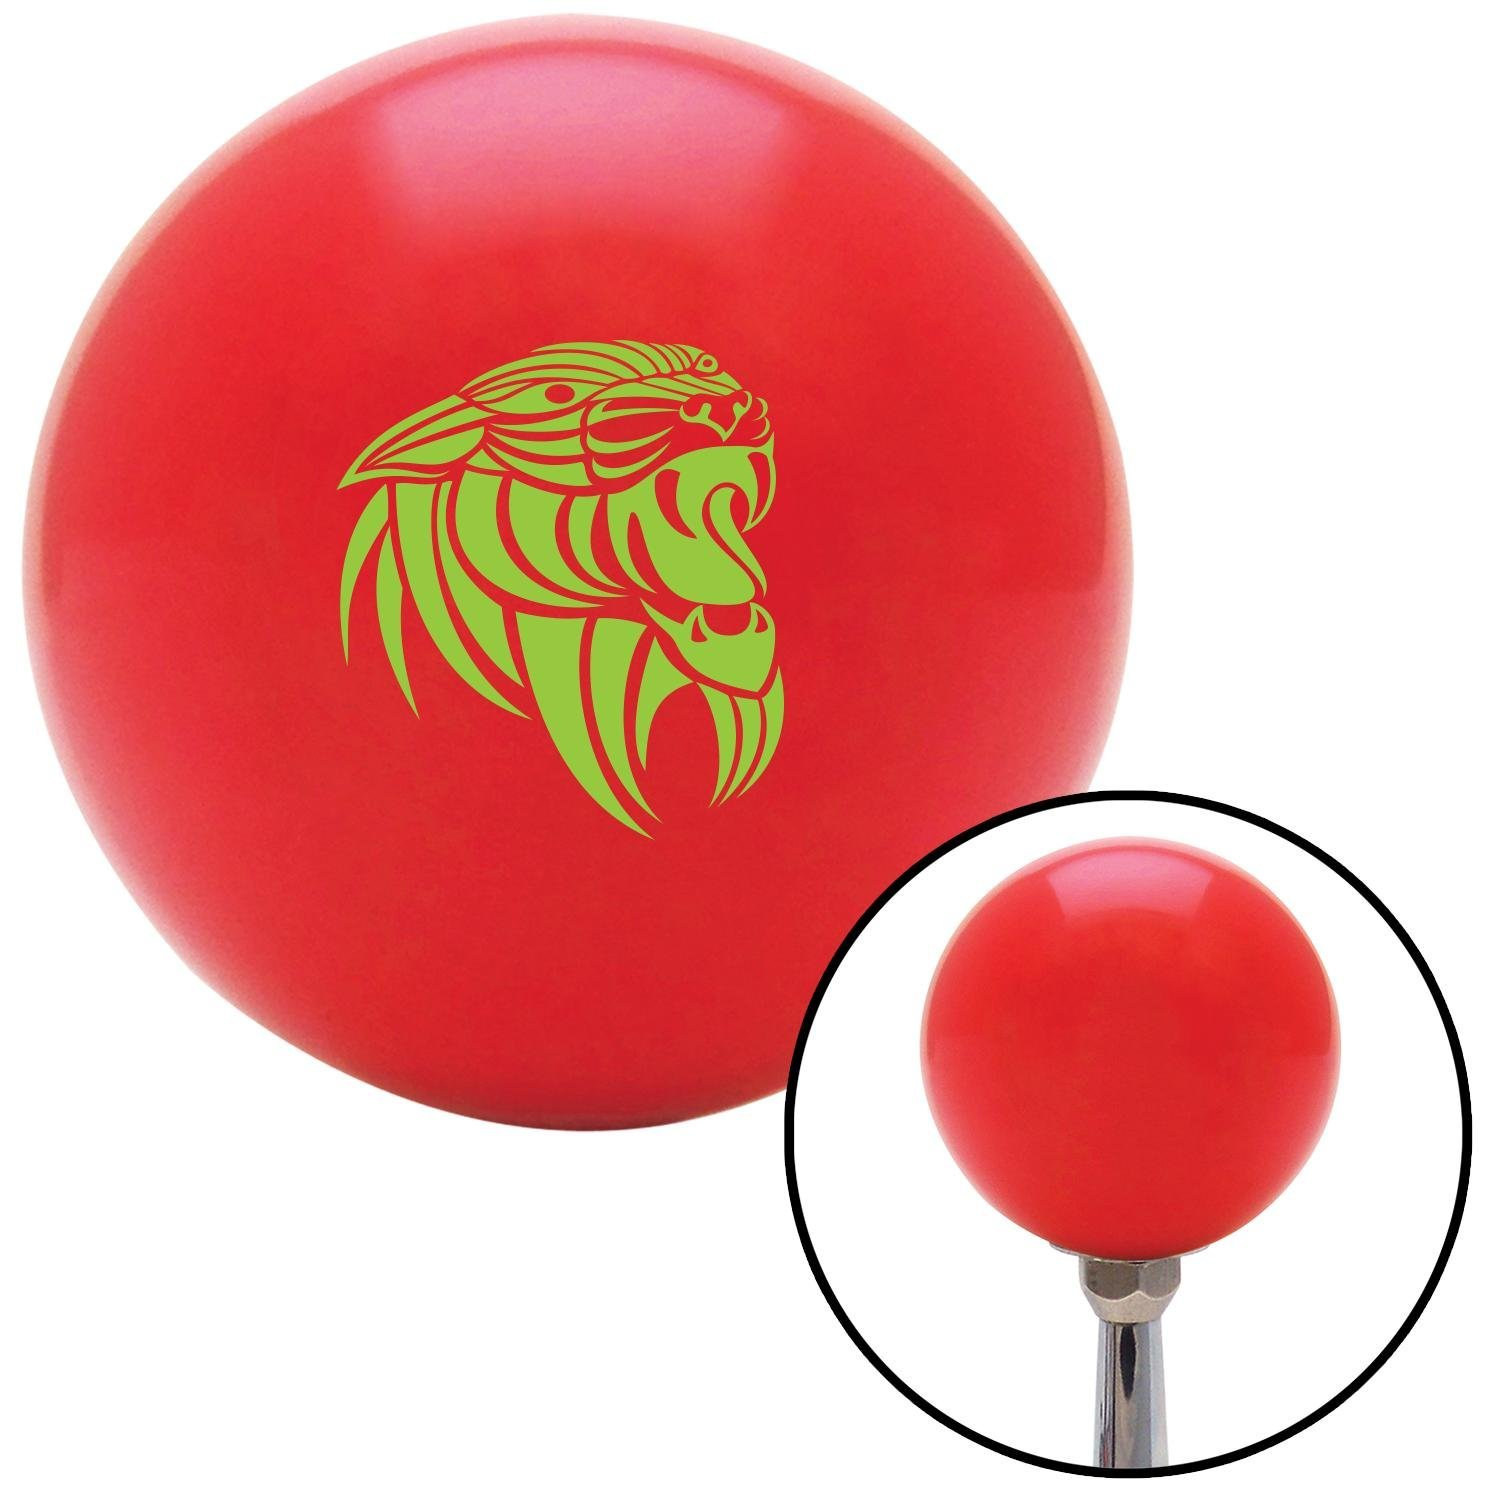 Green Wildcat American Shifter 94019 Red Shift Knob with M16 x 1.5 Insert